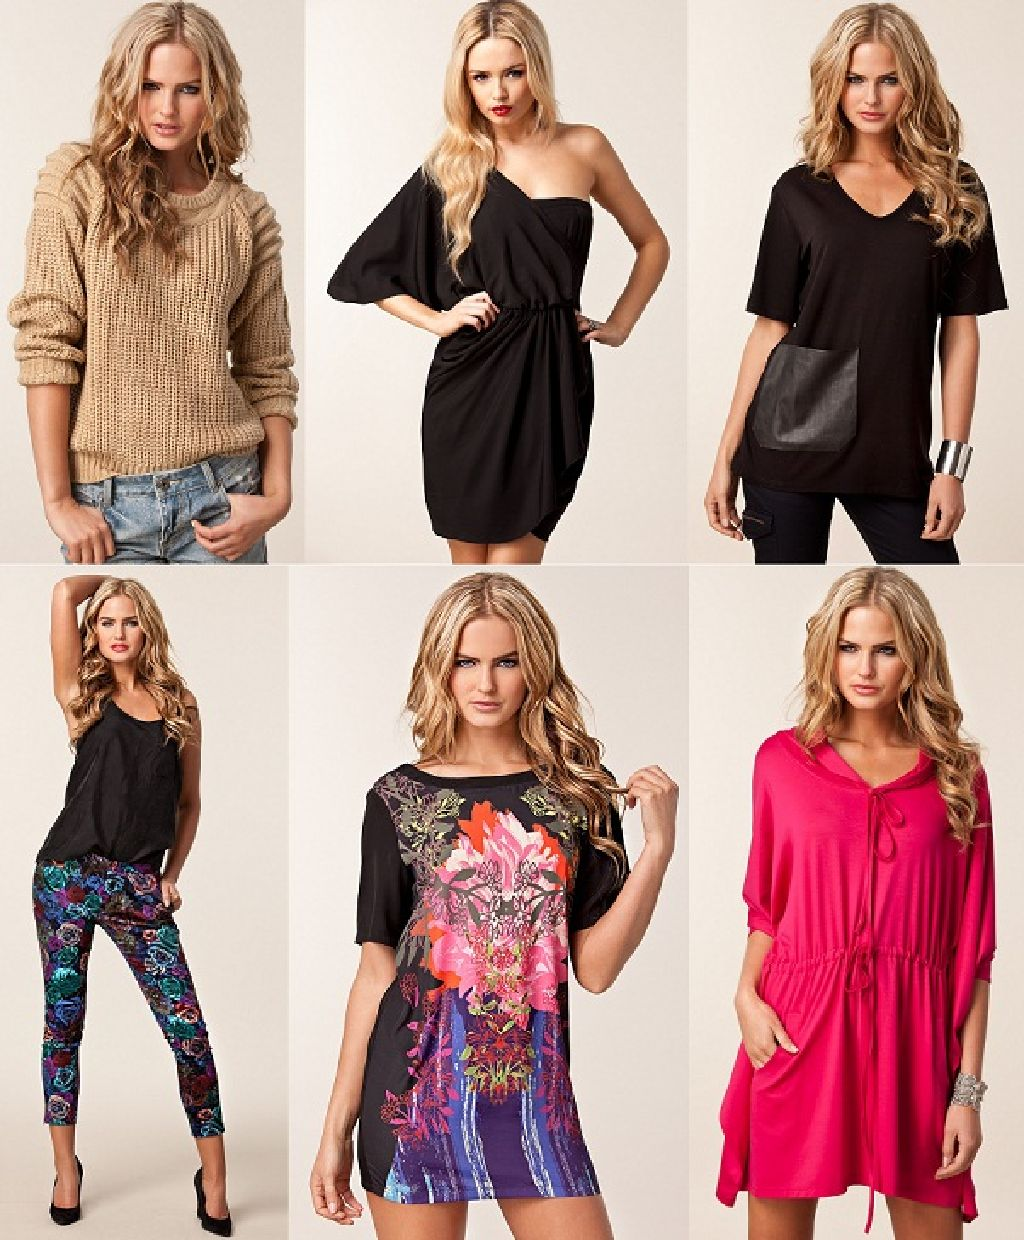 Fabulous Fashion for the Budget Minded Woman